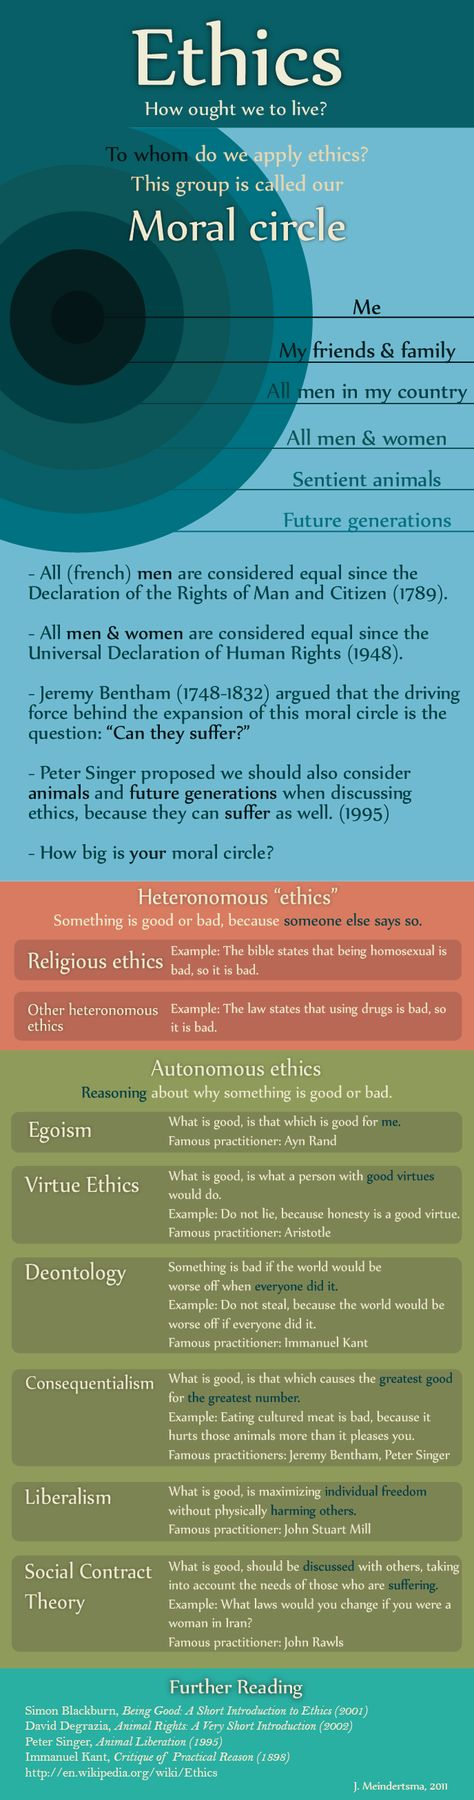 critique of applying ethical theories